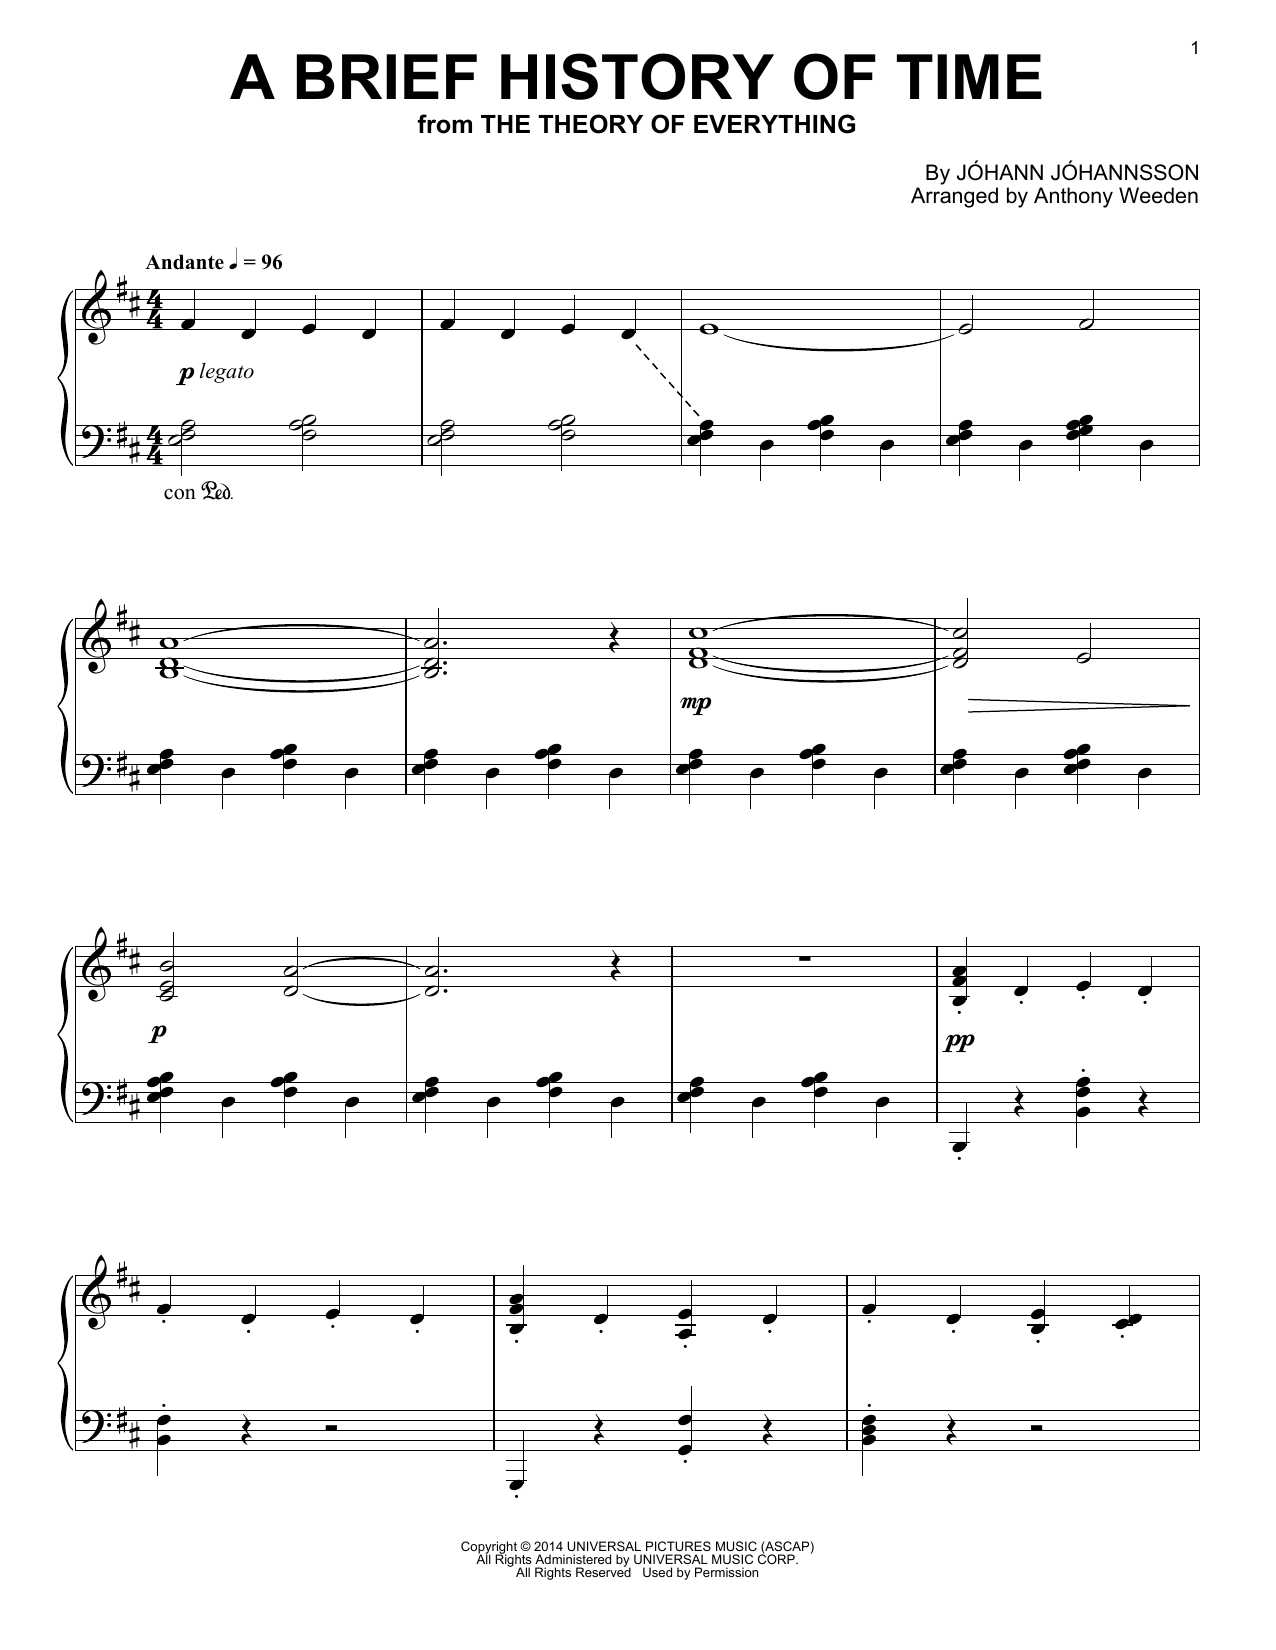 Johann Johannsson A Brief History Of Time sheet music notes and chords. Download Printable PDF.